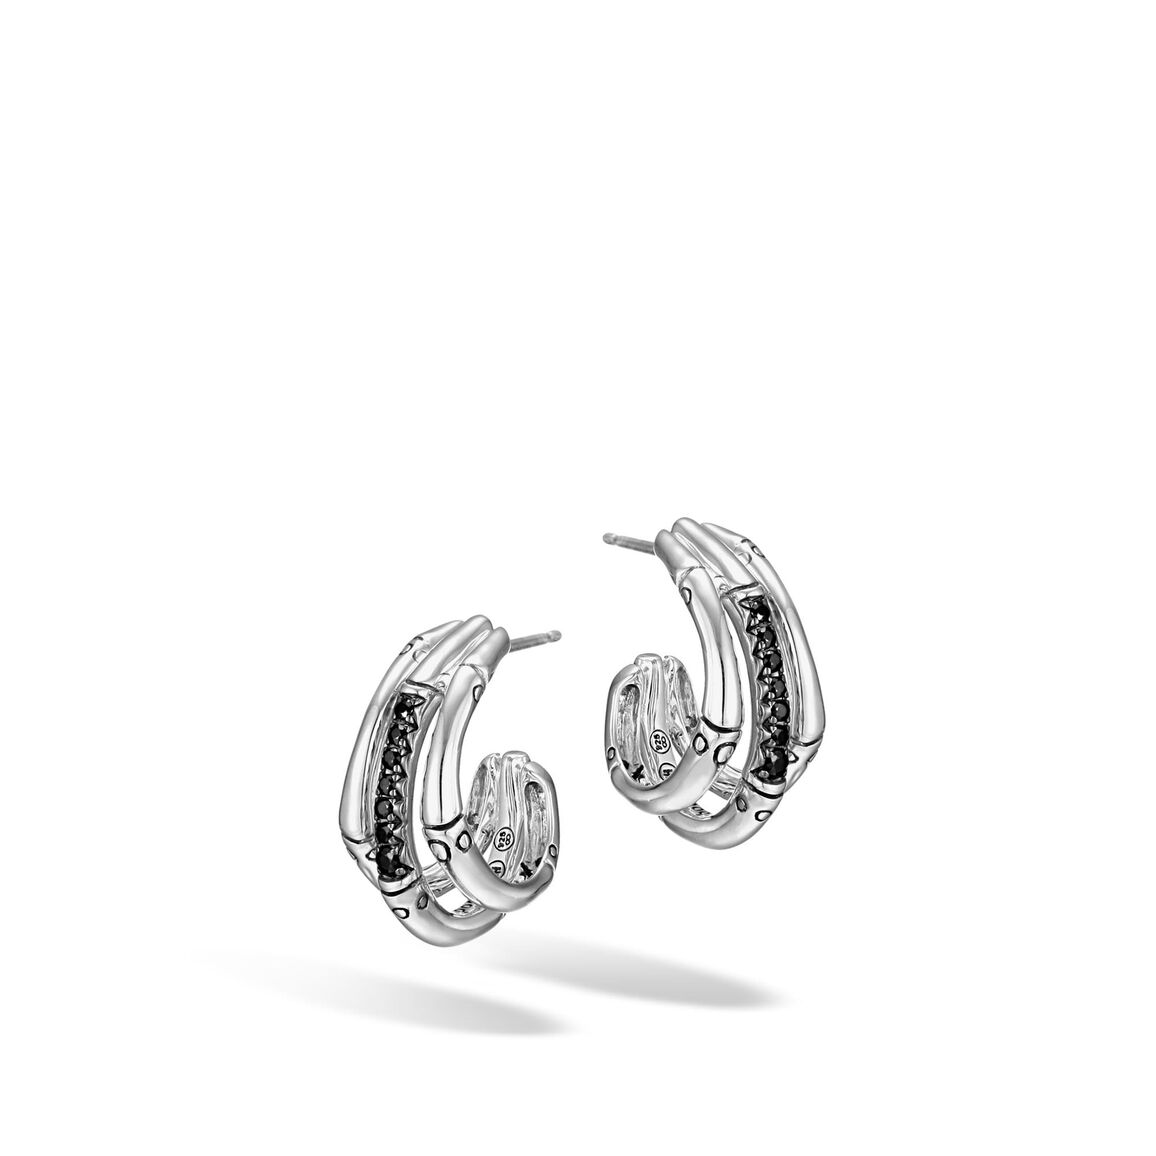 Bamboo Small J Hoop Earring in Silver with Gemstone